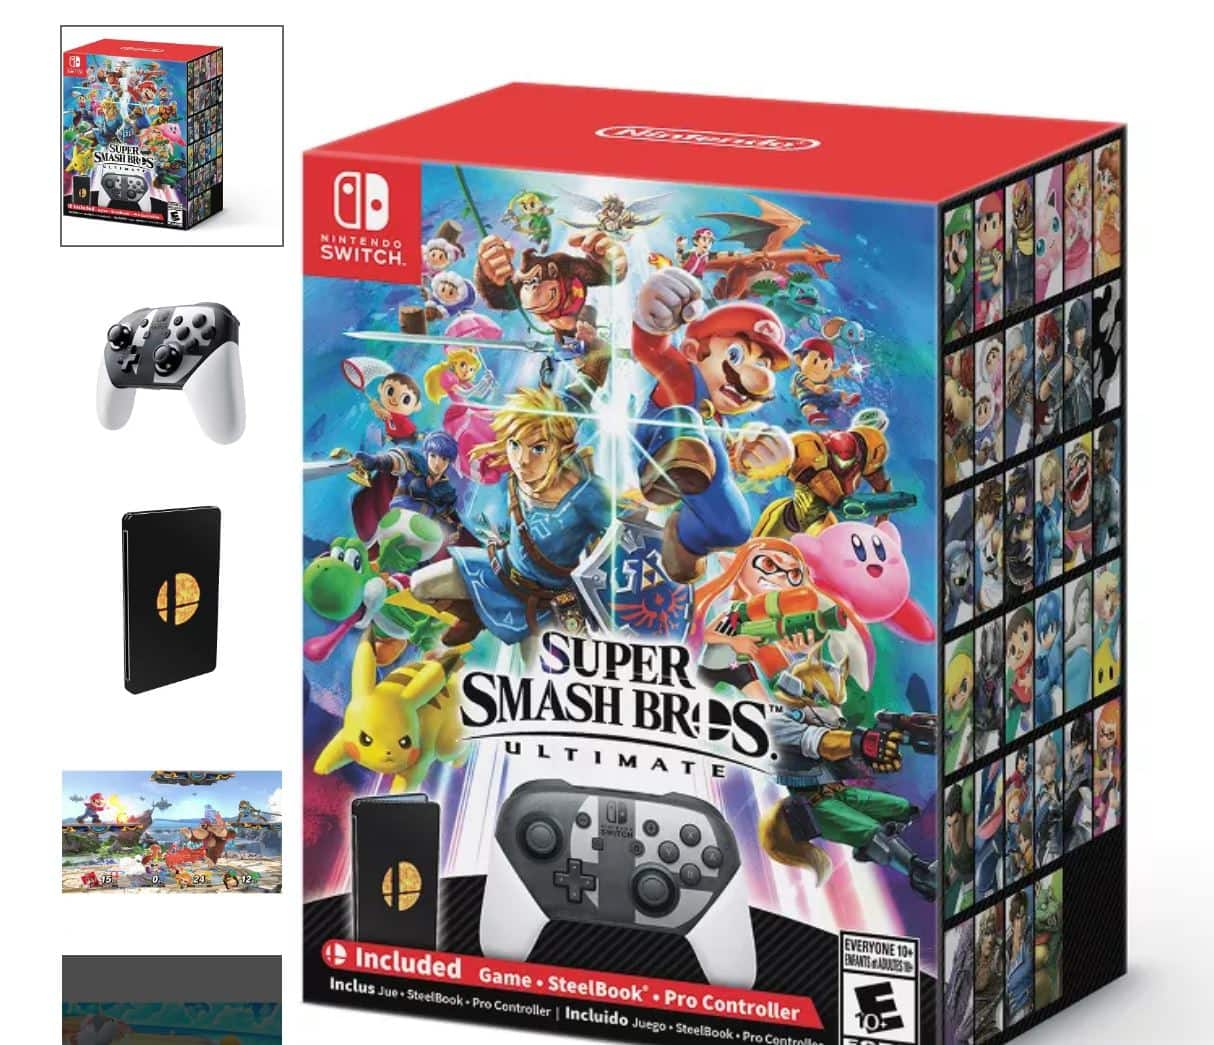 Super Smash Bros. Ultimate Special Edition for Nintendo Switch back in stock at Target $139.99